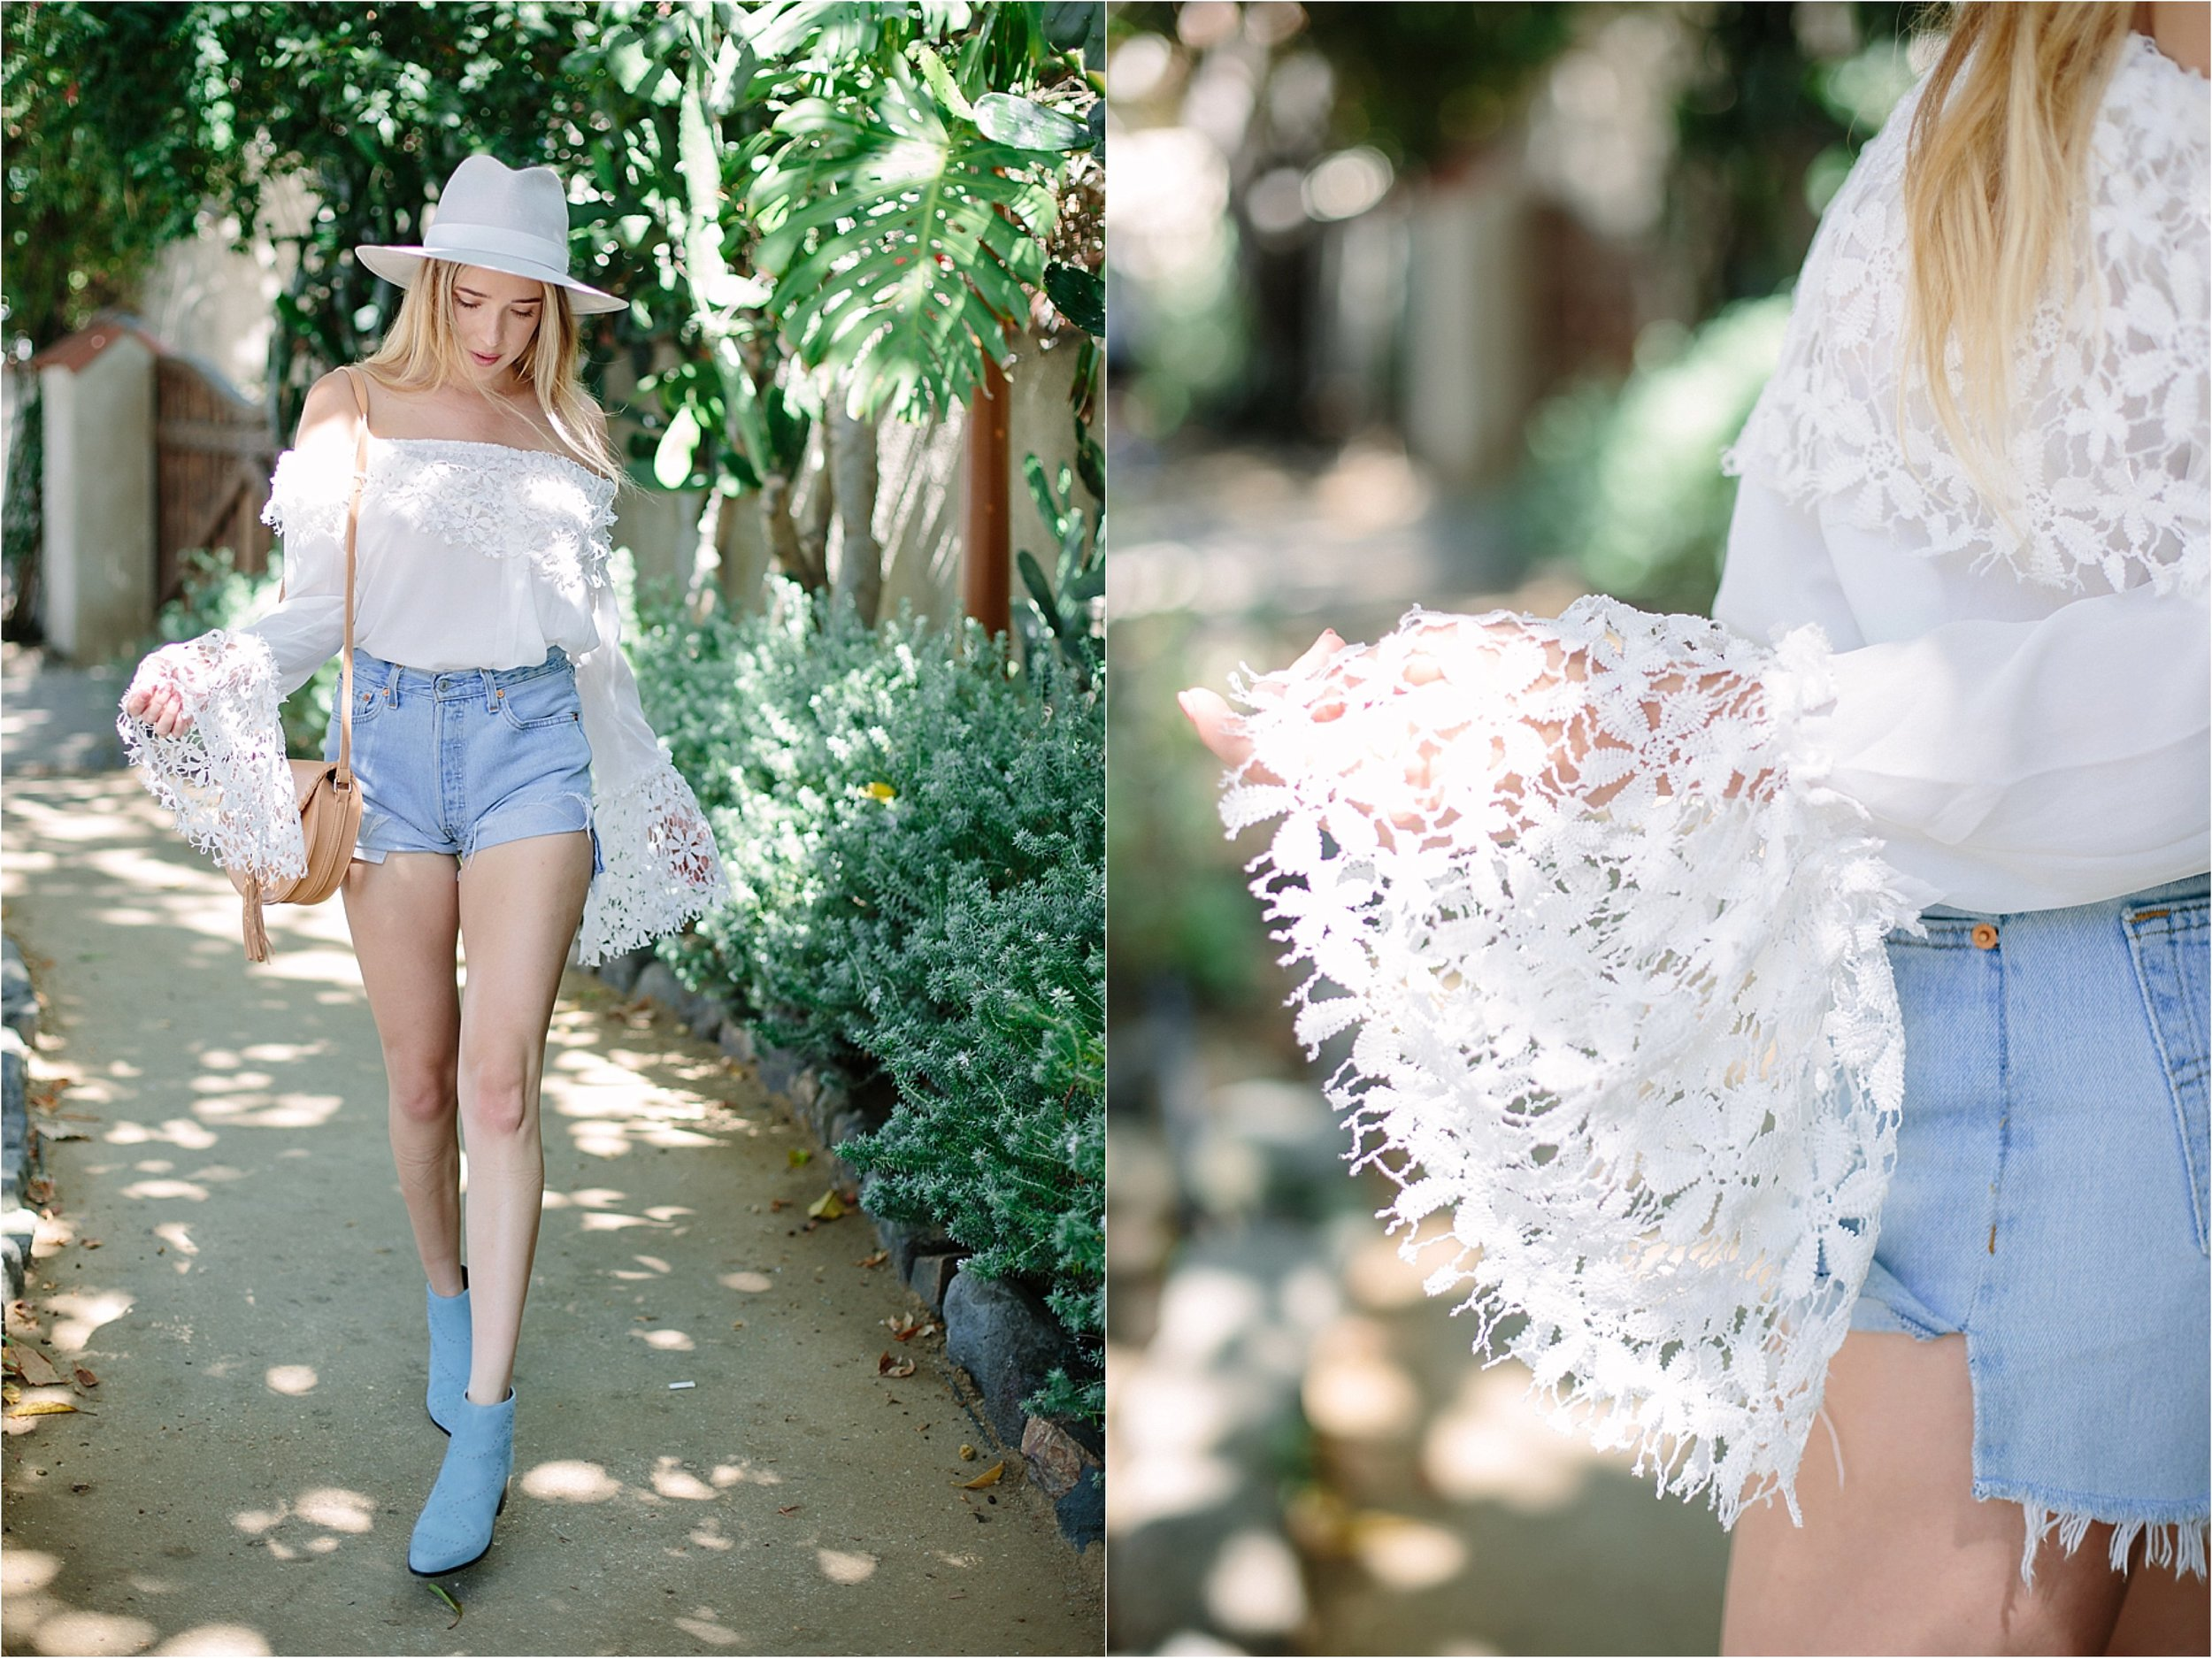 Los Angeles Nasty Gal Lace Bell Sleeve Detail Photo